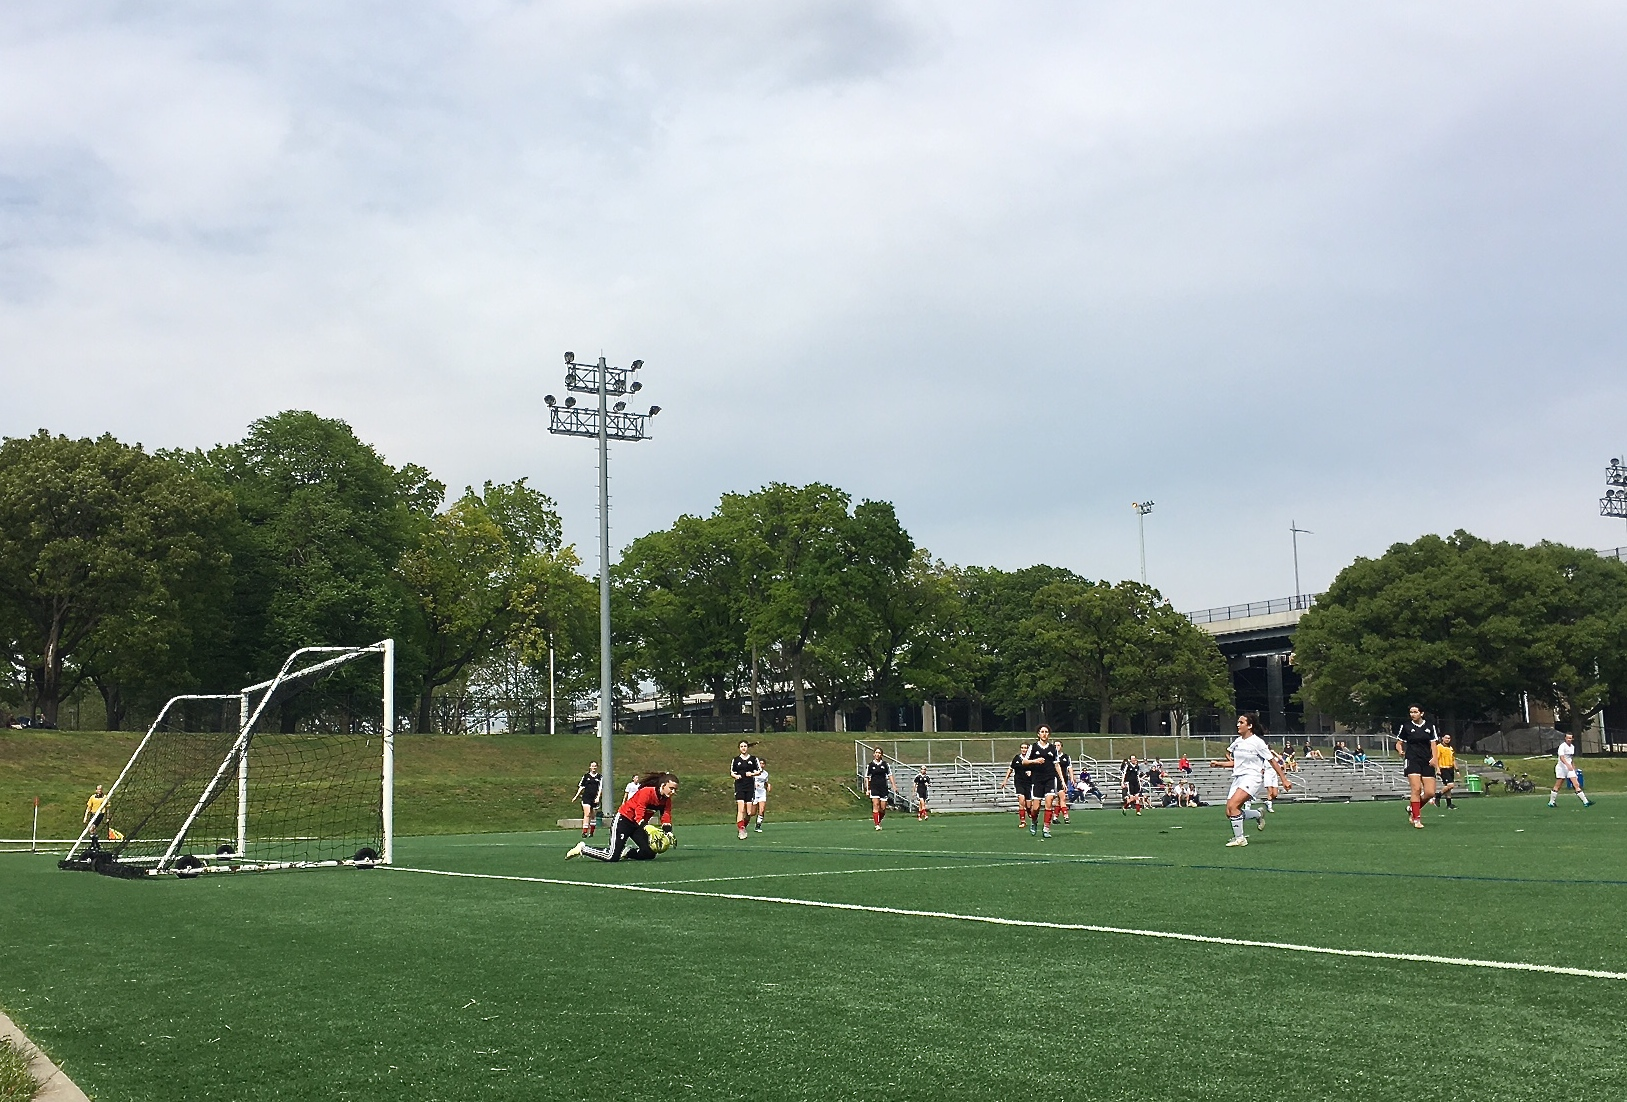 Kate  playing goalie, May 14, 2016 Randall's Island, in red jacket